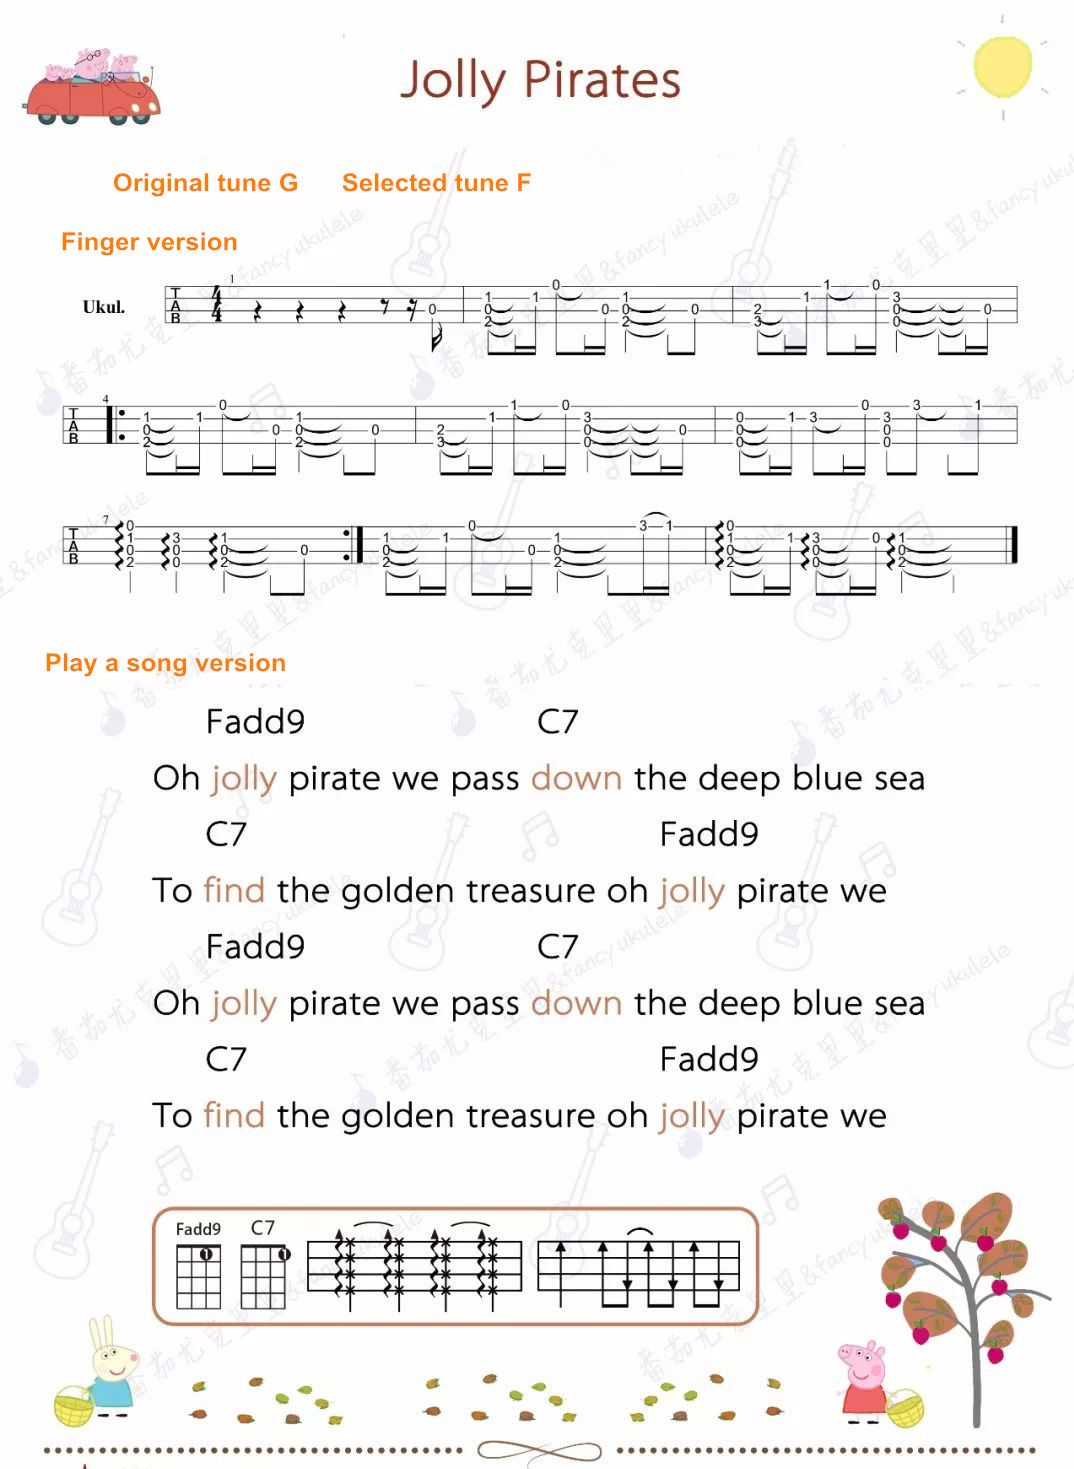 Peppa Pig Ukulele Sheet Jolly Pirates Peppa Pig Songs Pirate Songs Peppa Pig